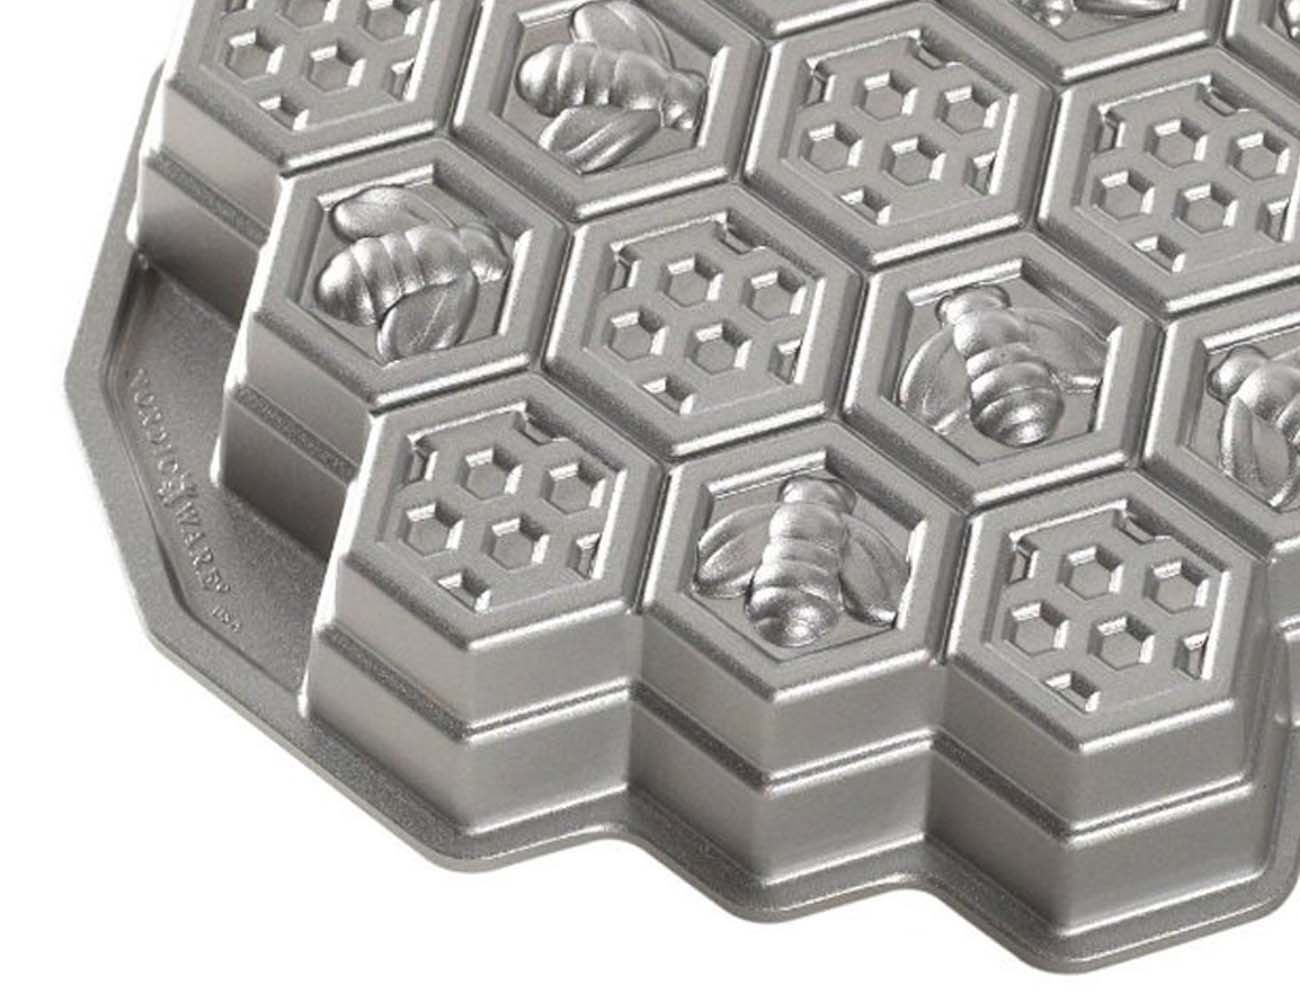 Honeycomb Cake Pan by Nordic Ware